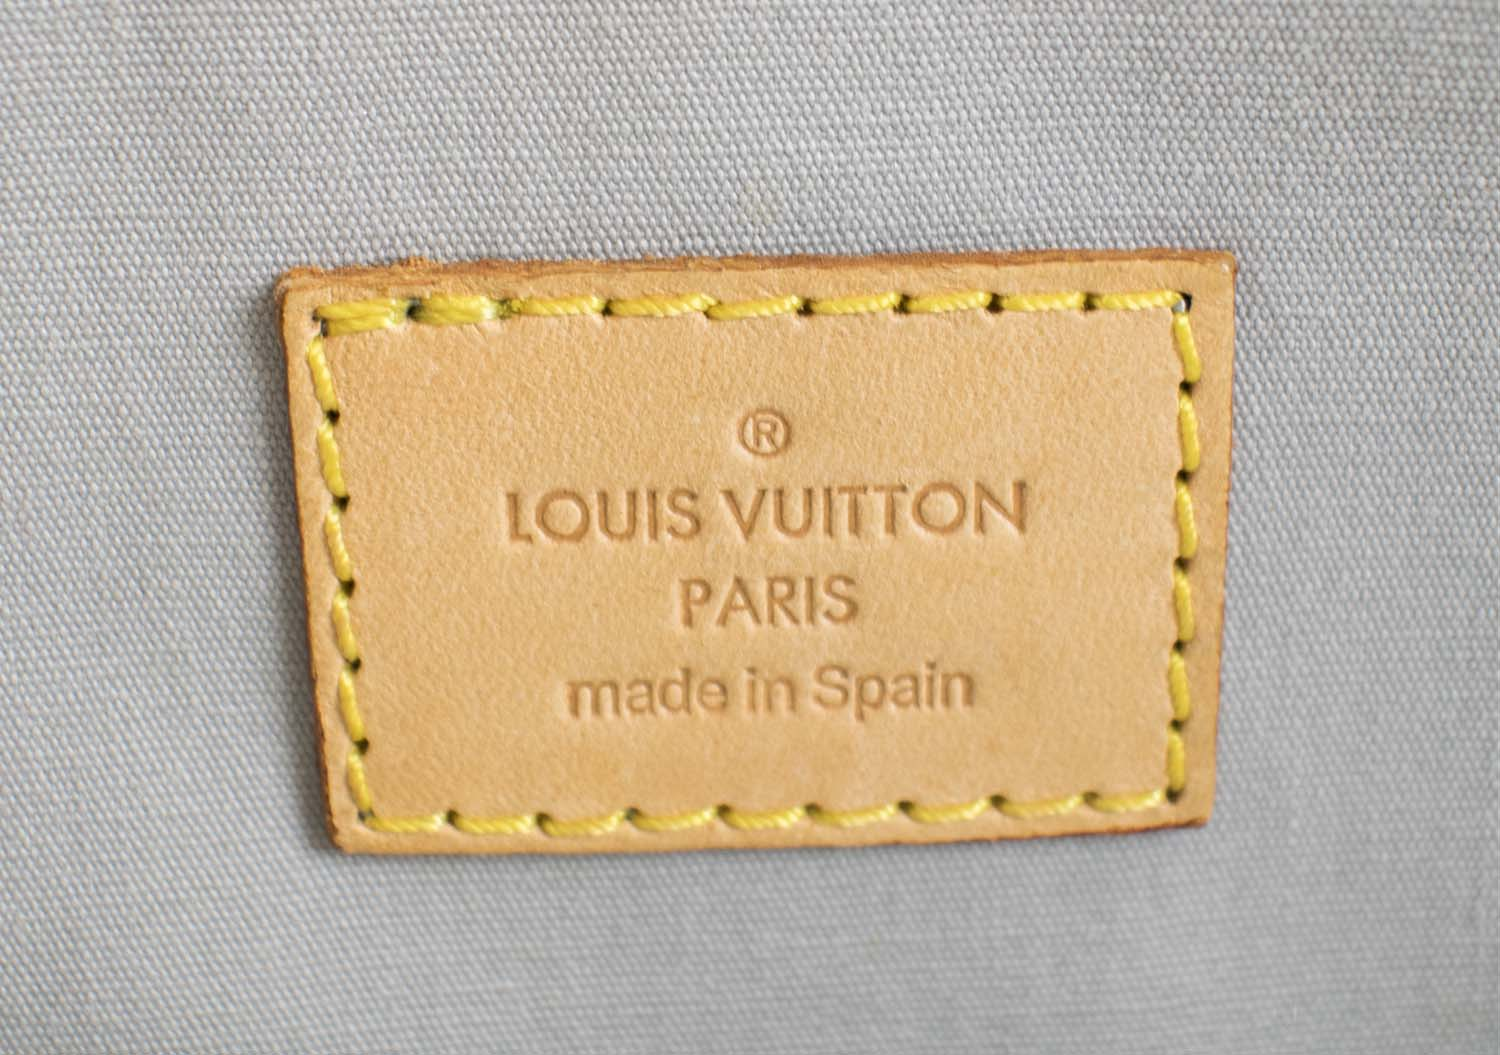 LOUIS VUITTON MONOGRAM VERNIS ROXBURY DRIVE BAG 26b4a174f0a8c